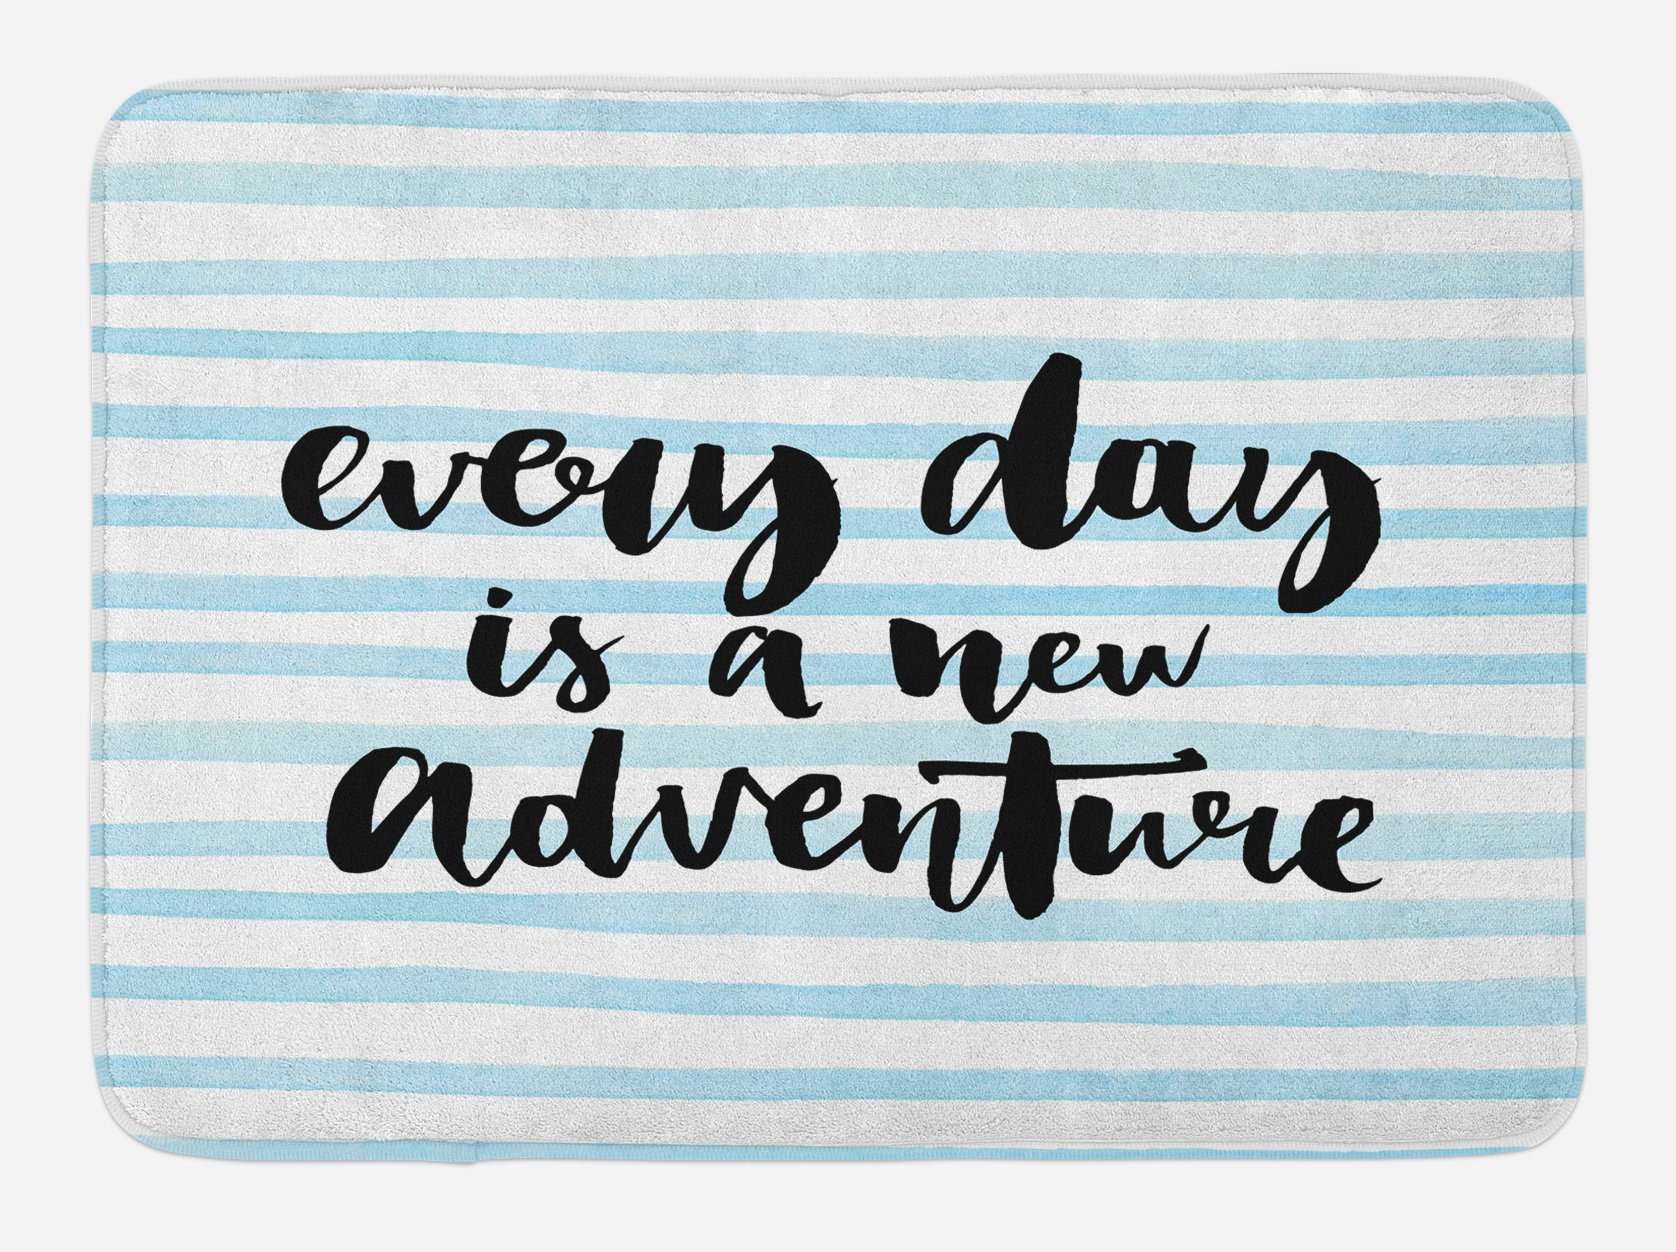 Ambesonne Adventure Bath Mat, Every Day is a New Adventure Quote Inspirational Things About Life Artwork, Plush Bathroom Decor Mat with Non Slip Backing, 29.5 W X 17.5 W Inches, Baby Blue Black